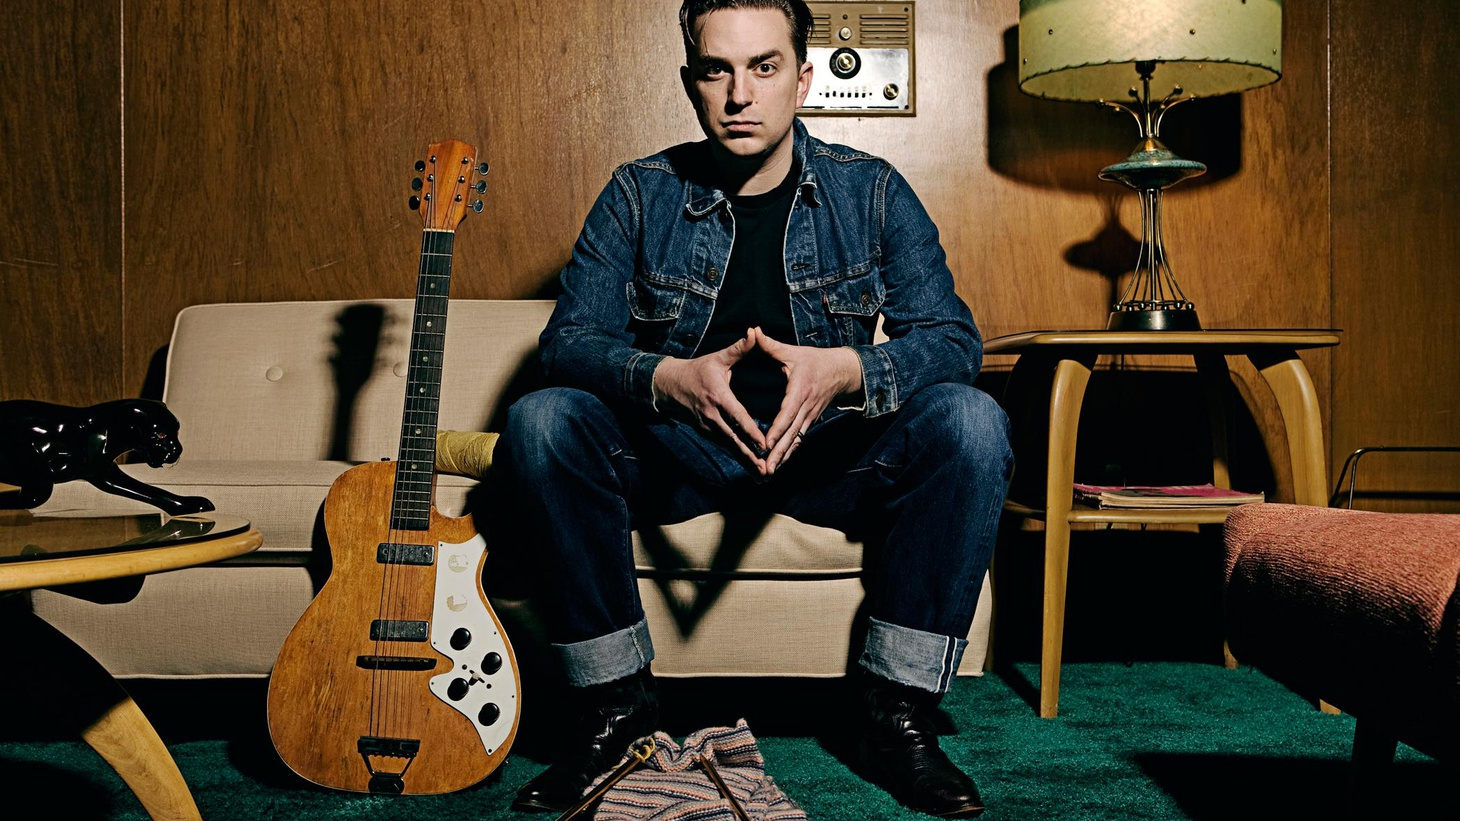 JD McPherson is destined to satisfy traditional American rock 'n roll and R&B purists on his debut album...